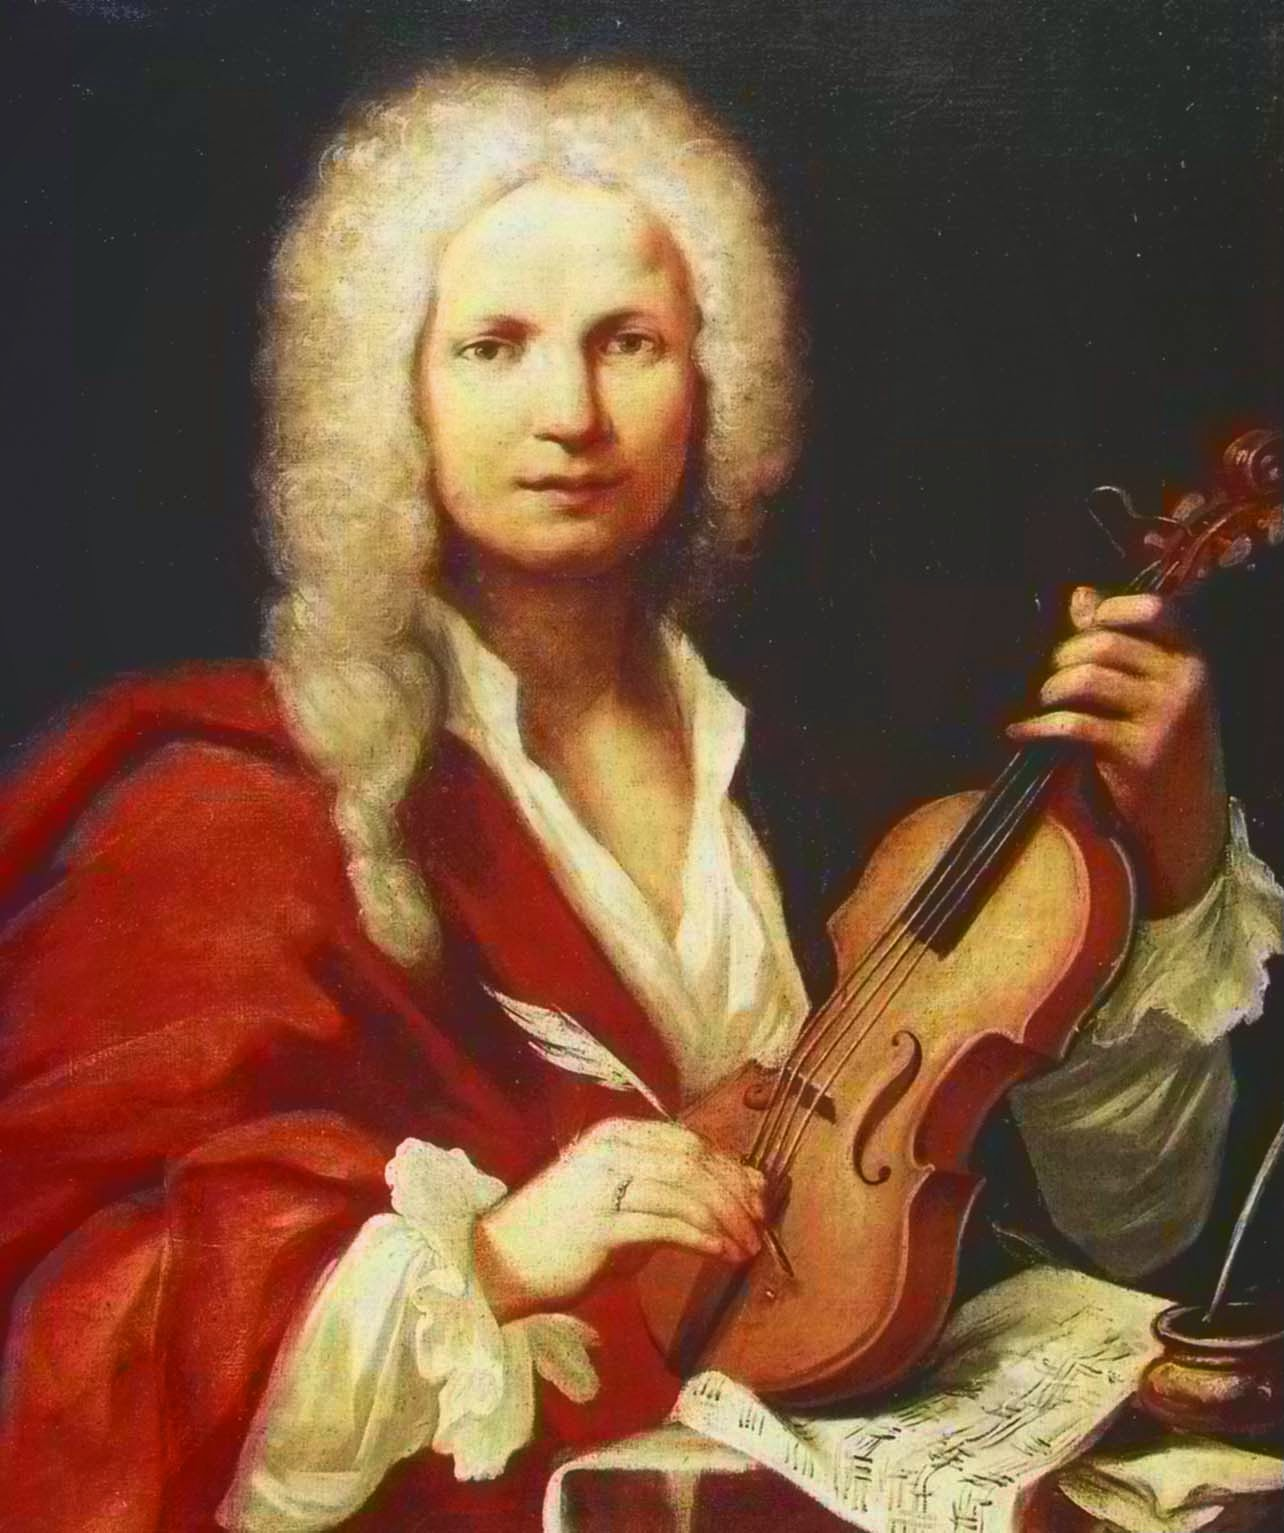 The 15 Greatest Classical Composers Of All Time - Antonio Vivaldi (1678-1741)